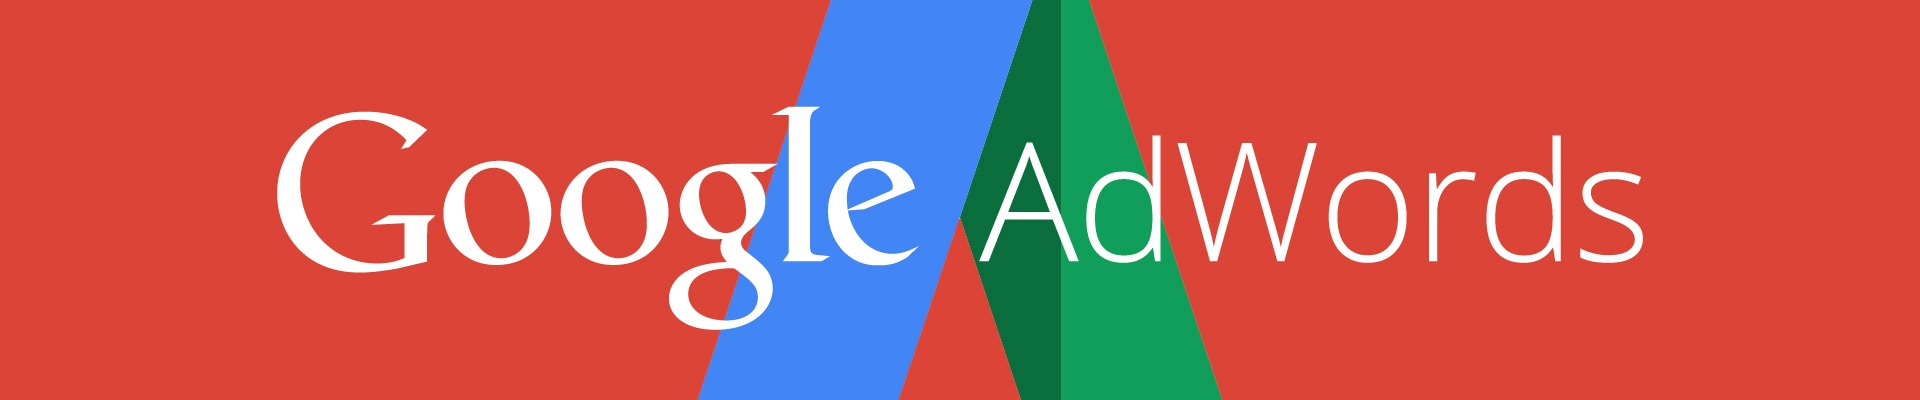 Google AdWords for flere nye kunder